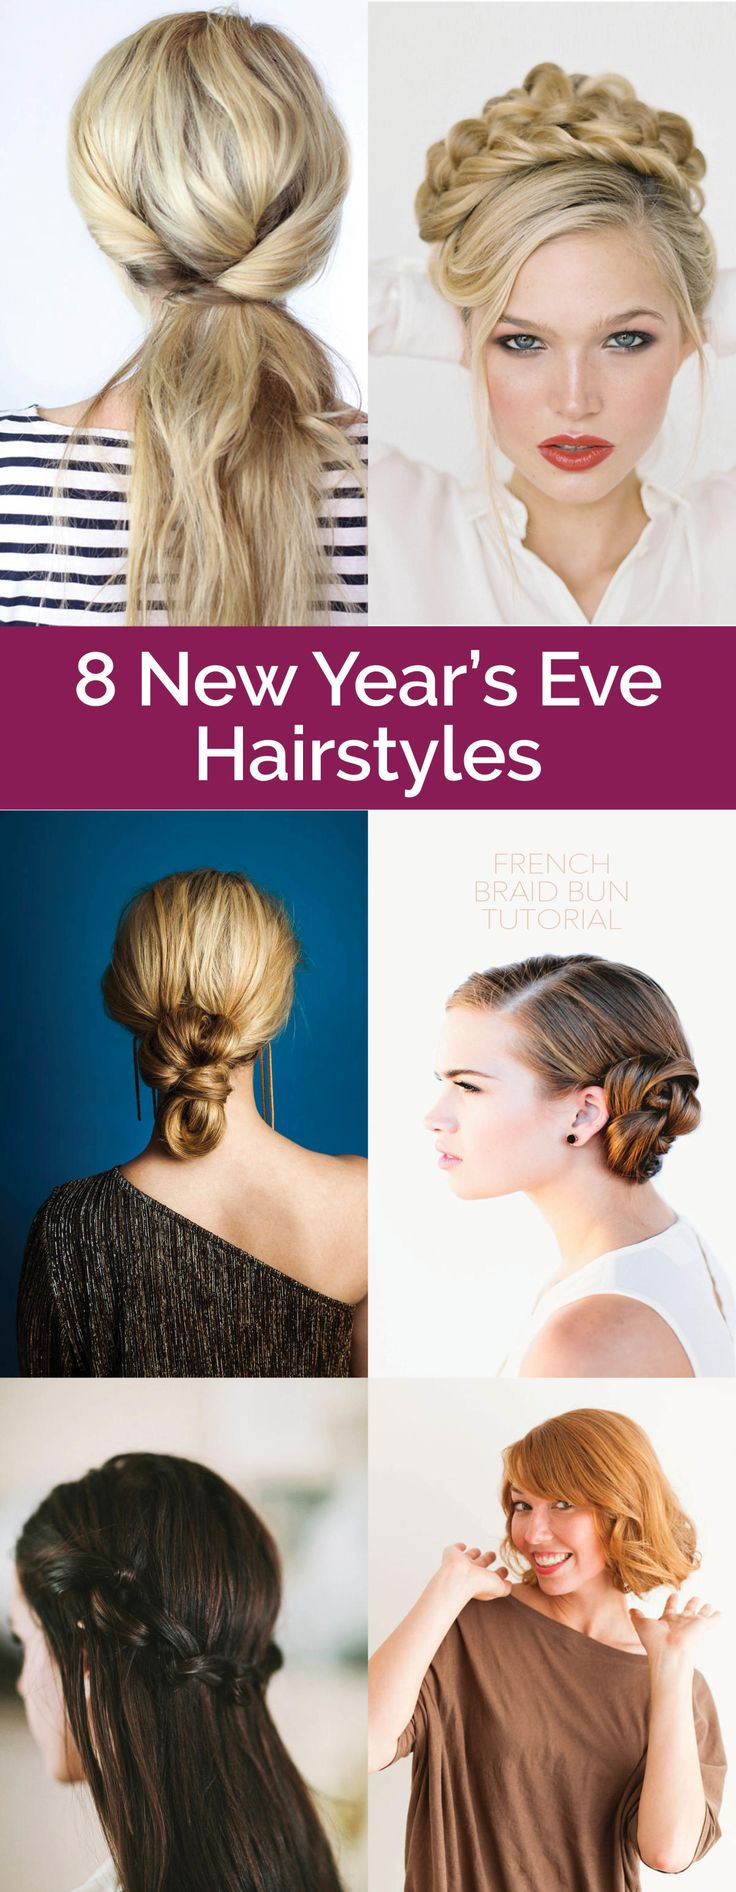 hair styles for new years eve new year s hairstyles ponies and buns 8361 | ba5fea596912fb6d492ed462da01b089